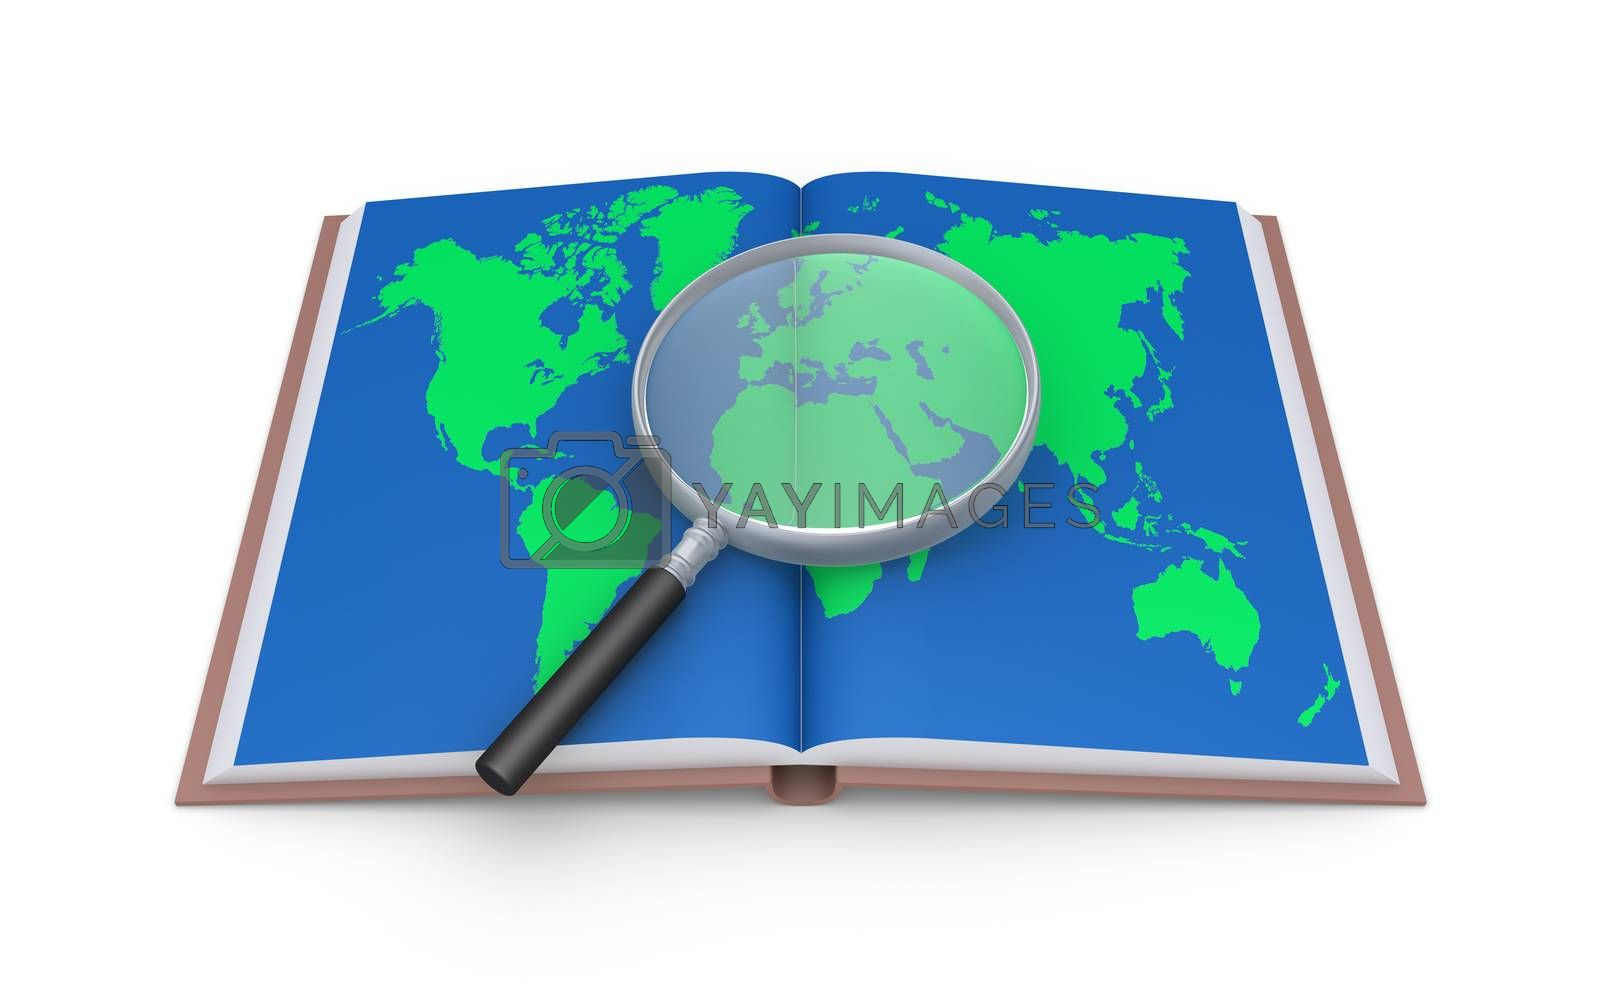 Magnifier on an opened book with the world map in its page